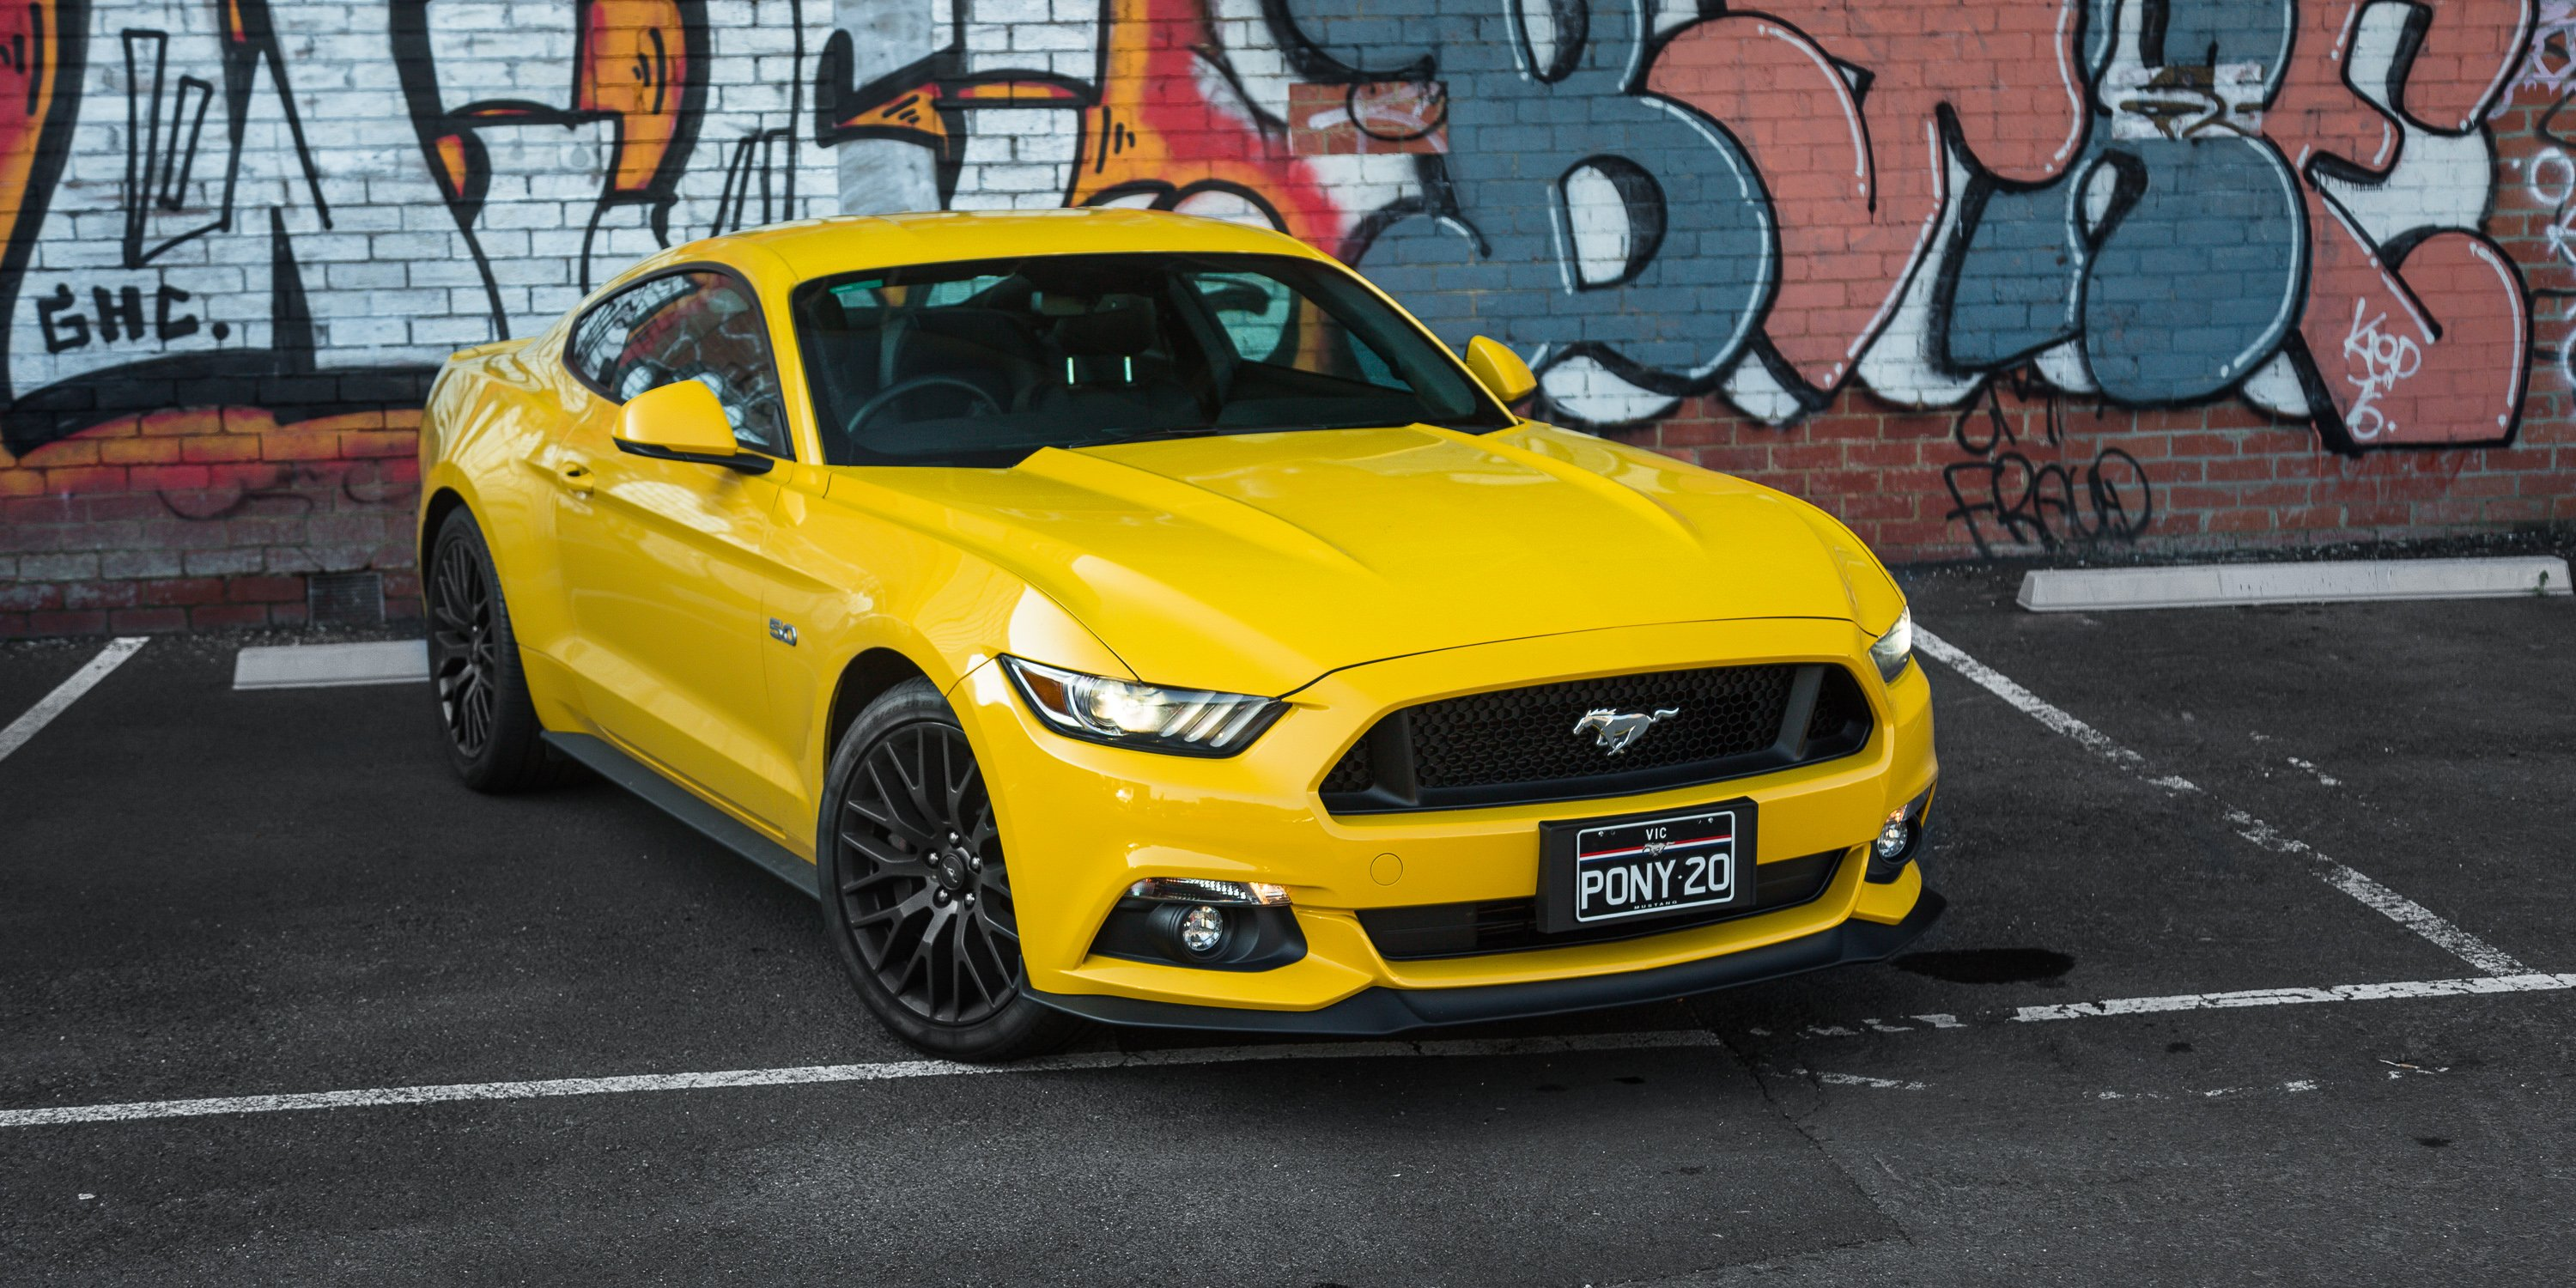 2017 ford mustang gt fastback review long term report two first impressions photos 1 of 28. Black Bedroom Furniture Sets. Home Design Ideas